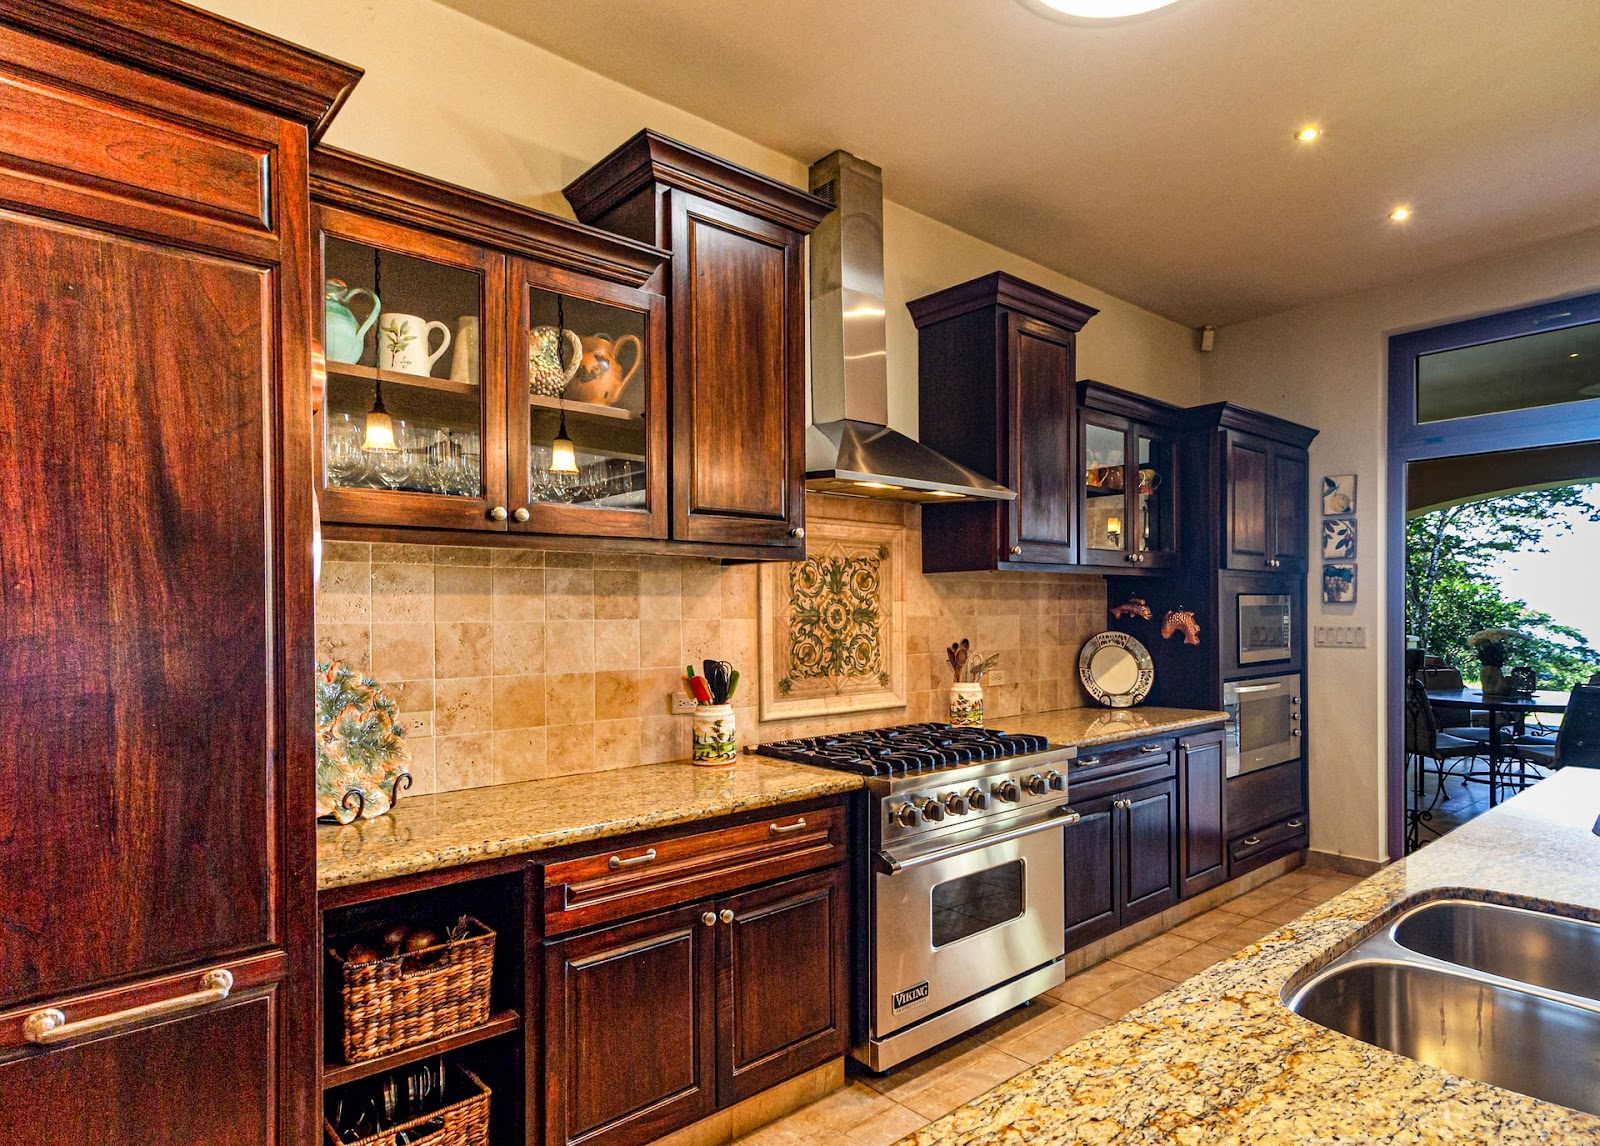 A rustic cabinet design for your kitchen creates a warm and inviting aesthetic; wooden cabinets with marble countertops